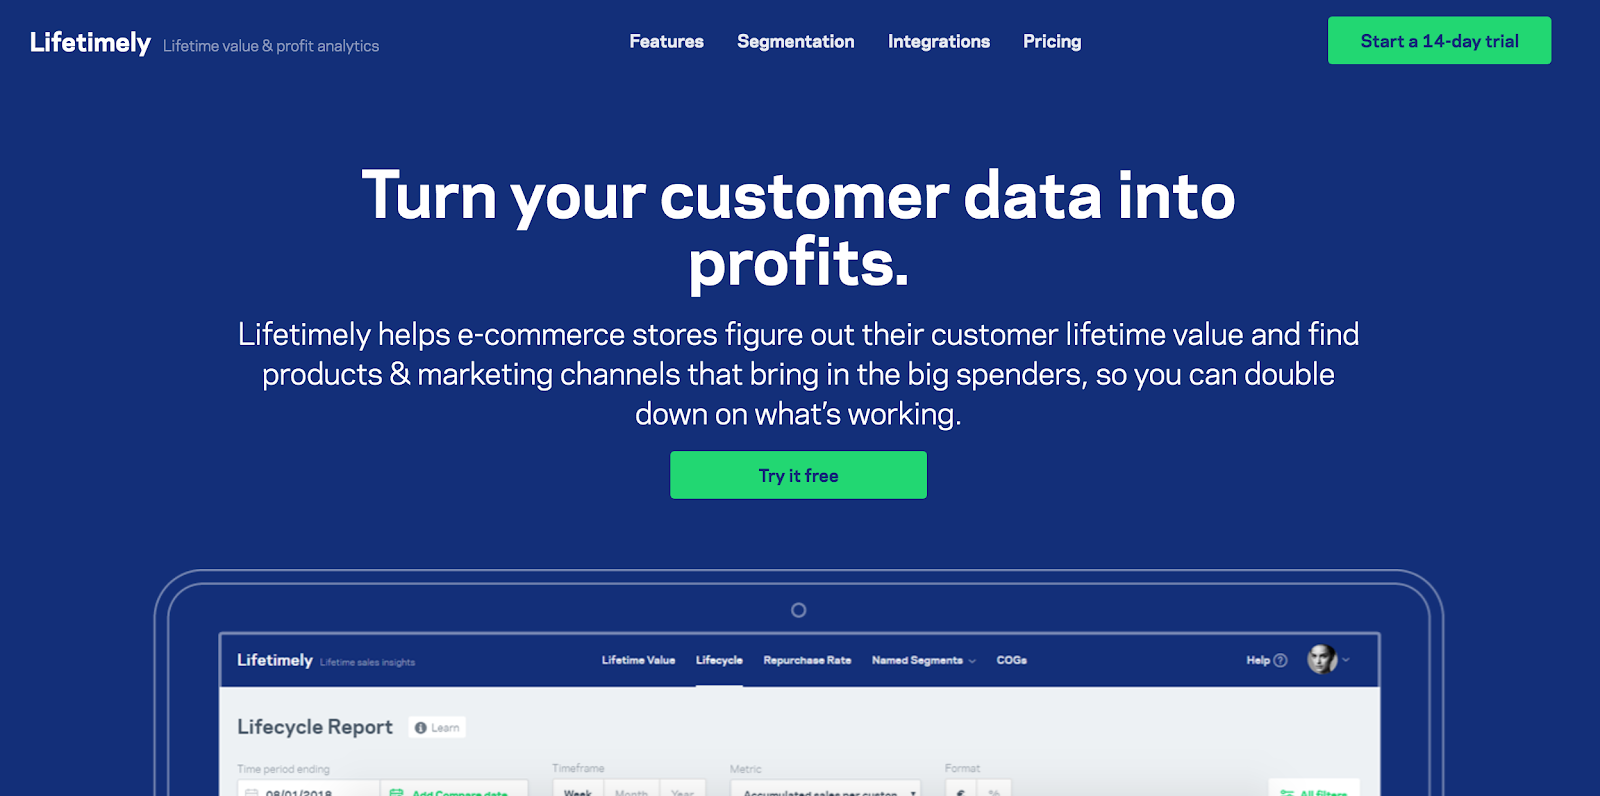 Lifetimely lifetime value and profit analytics Shopify app